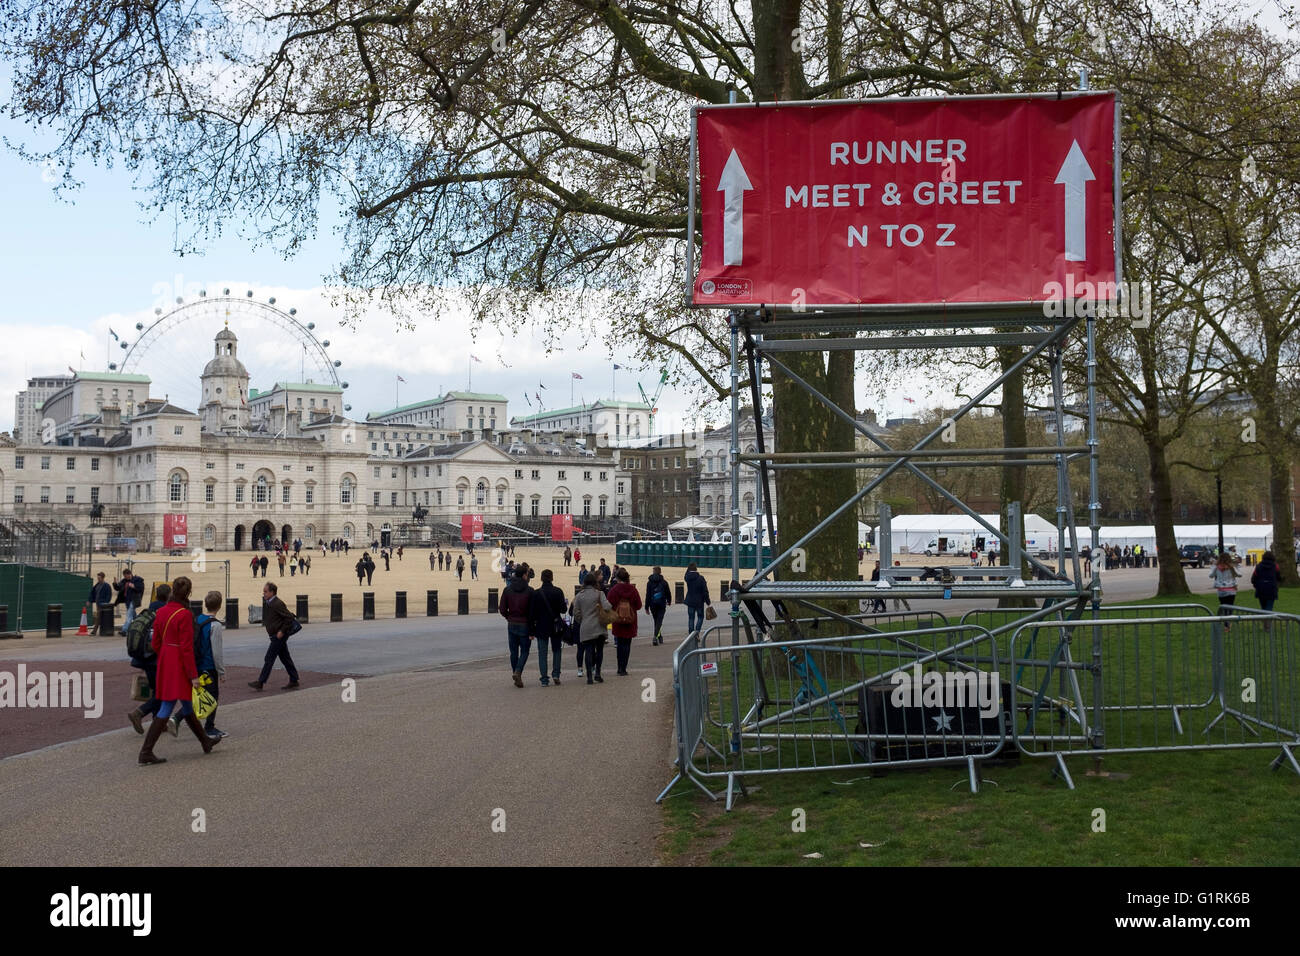 Finish line preparations under way the day before the 2016 London Marathon - Stock Image